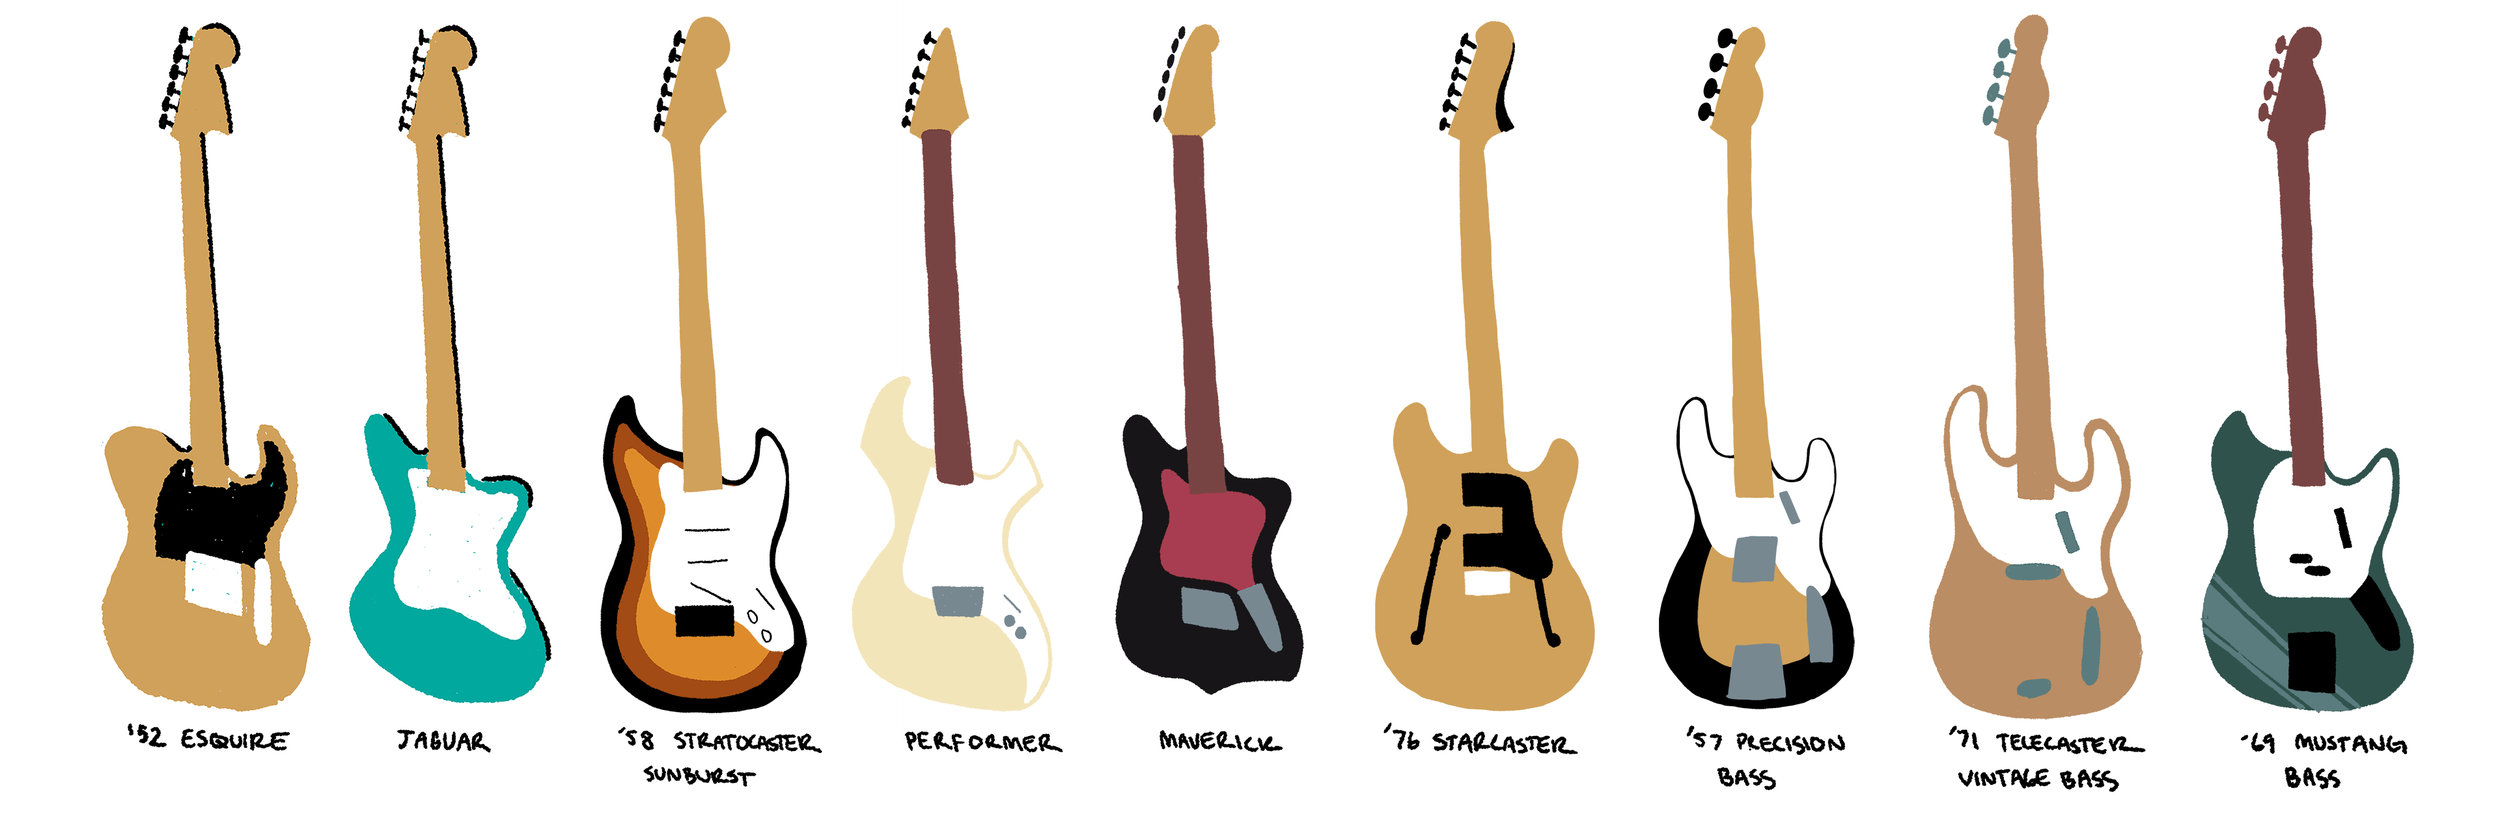 fender_guitarsketches.jpg